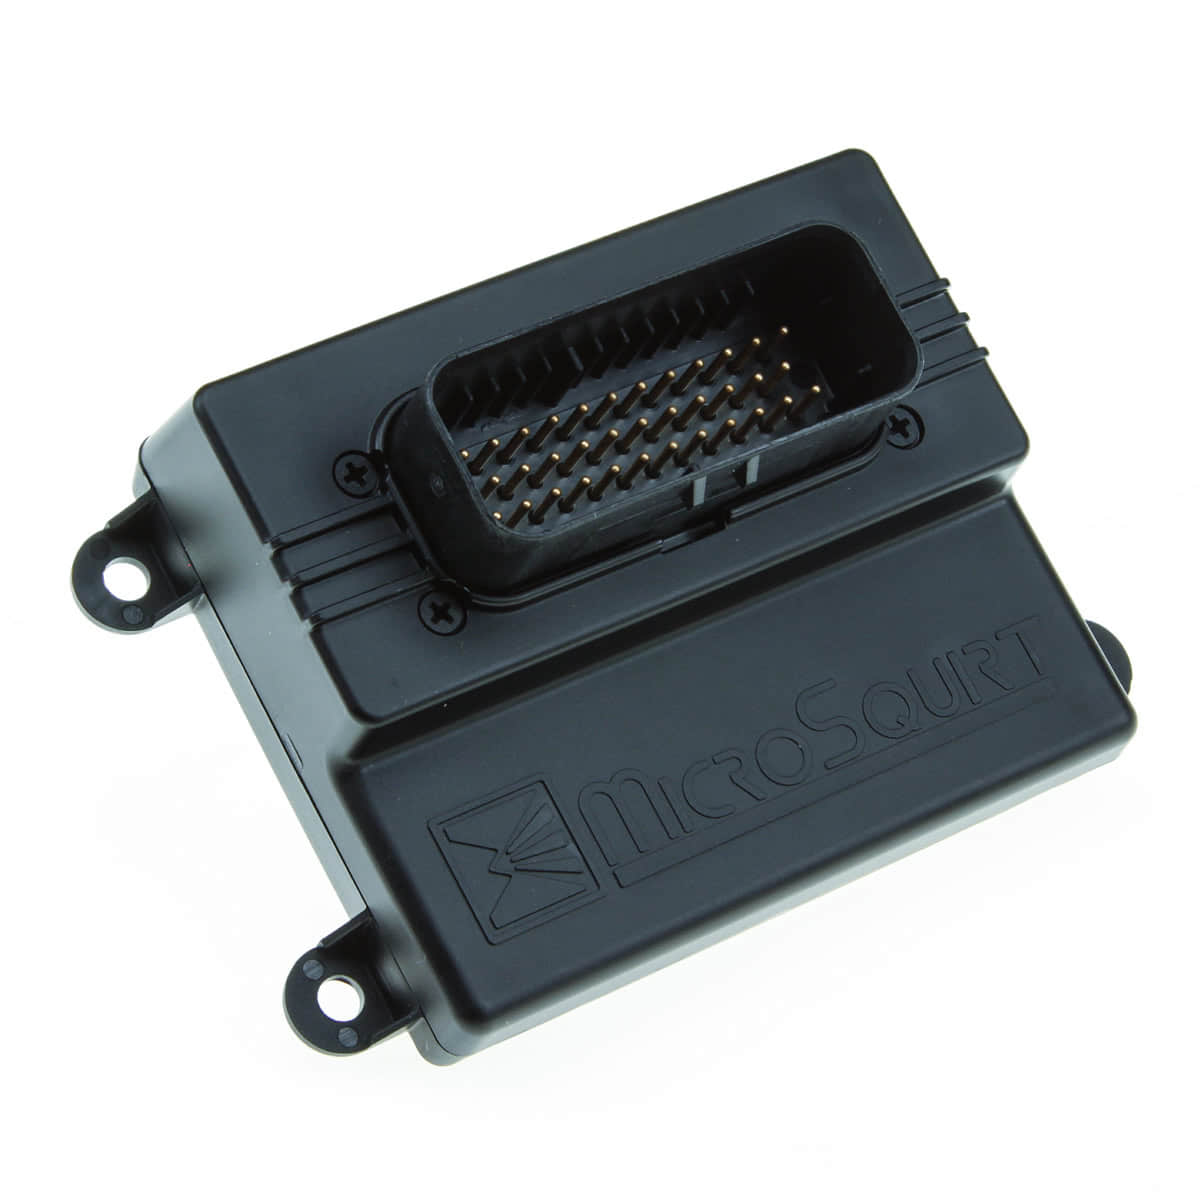 MicroSquirt ECU by DIYAutoTune, MicroSquirt with 30, MicroSquirt with 8